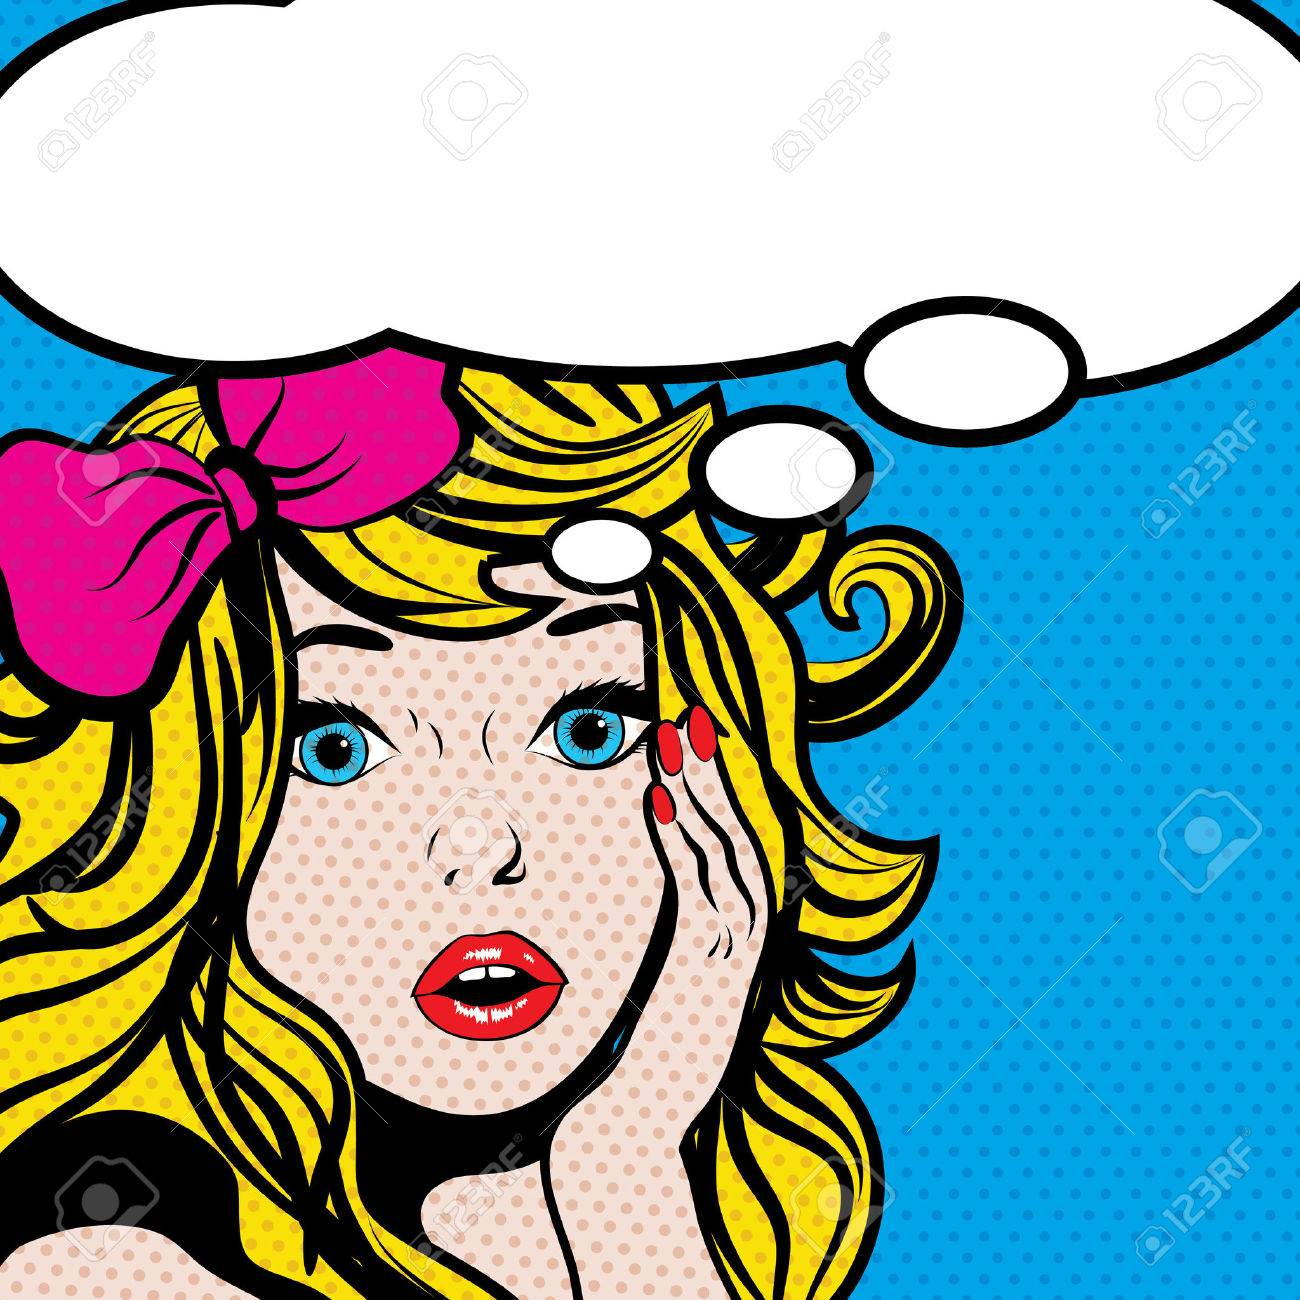 Pop art woman with blank thought bubble - 50963349